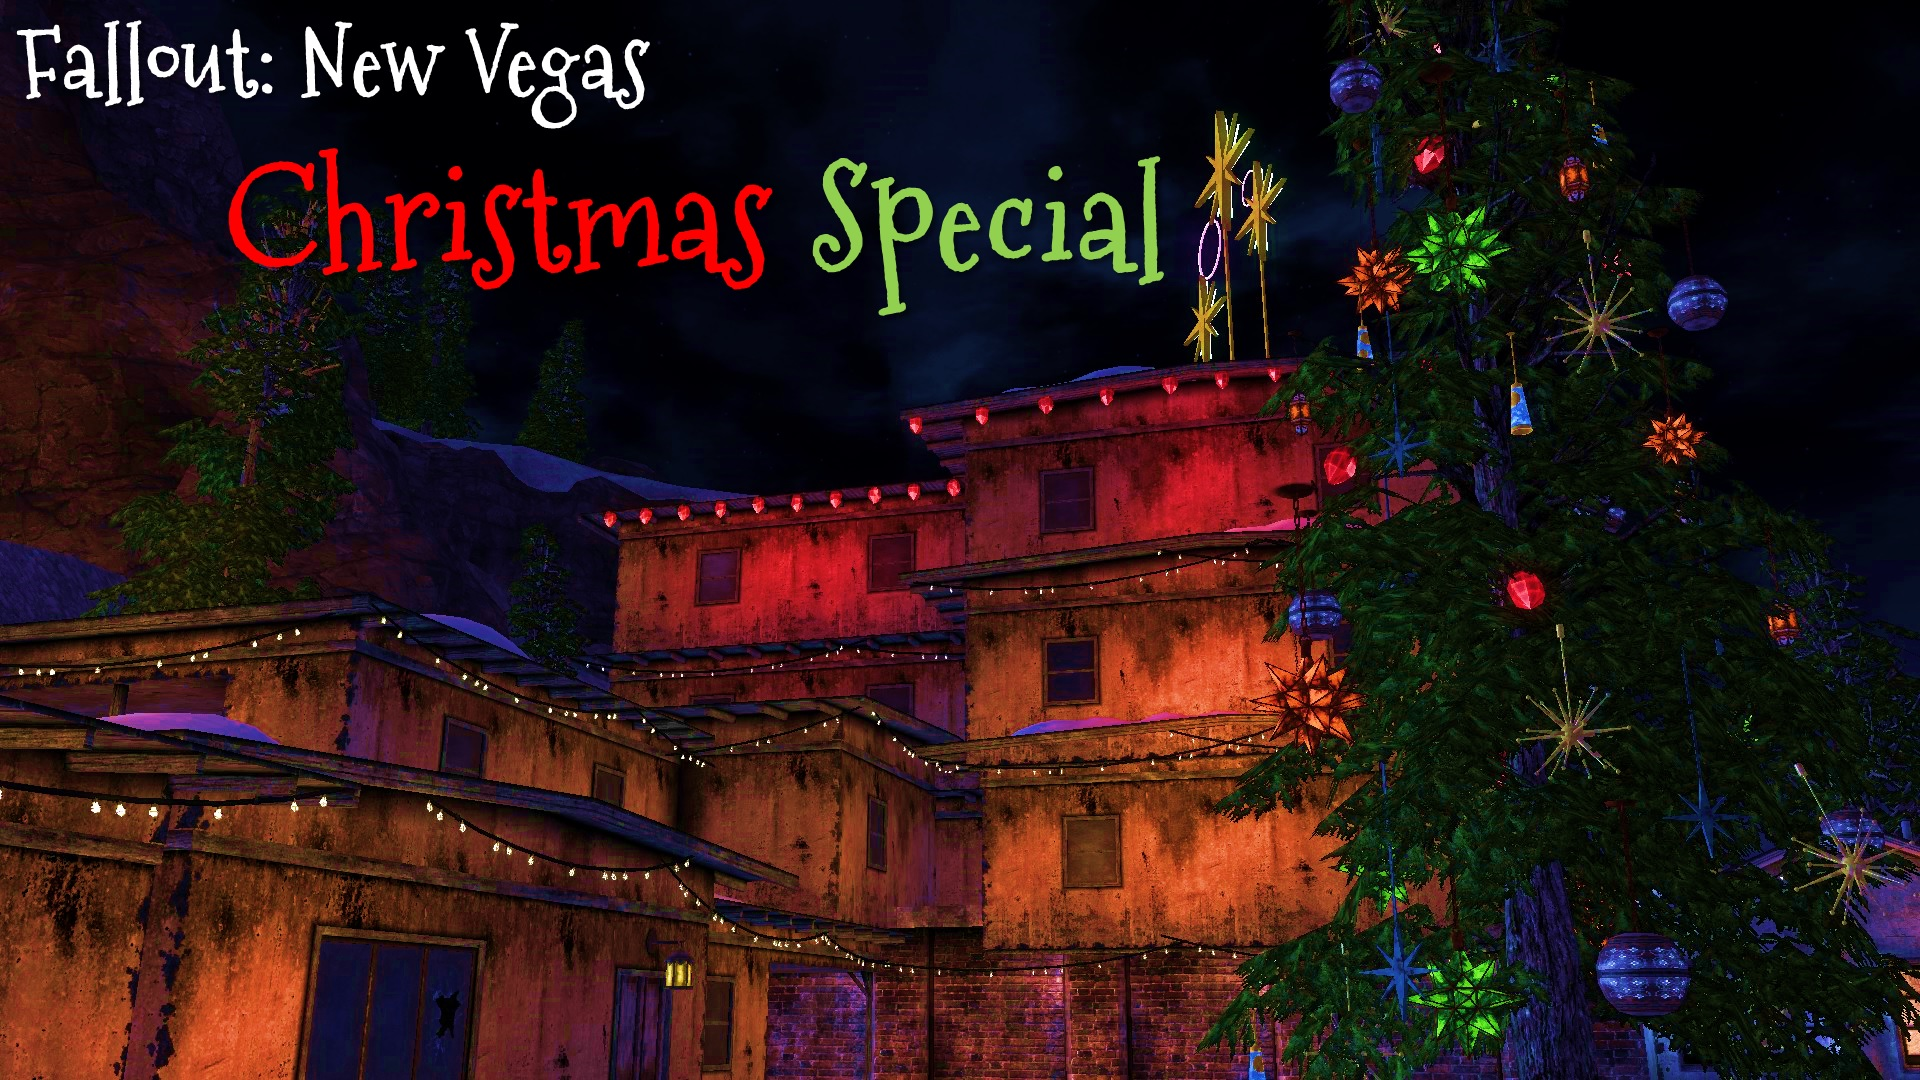 Fallout New Vegas Christmas Special at Fallout New Vegas - mods ...